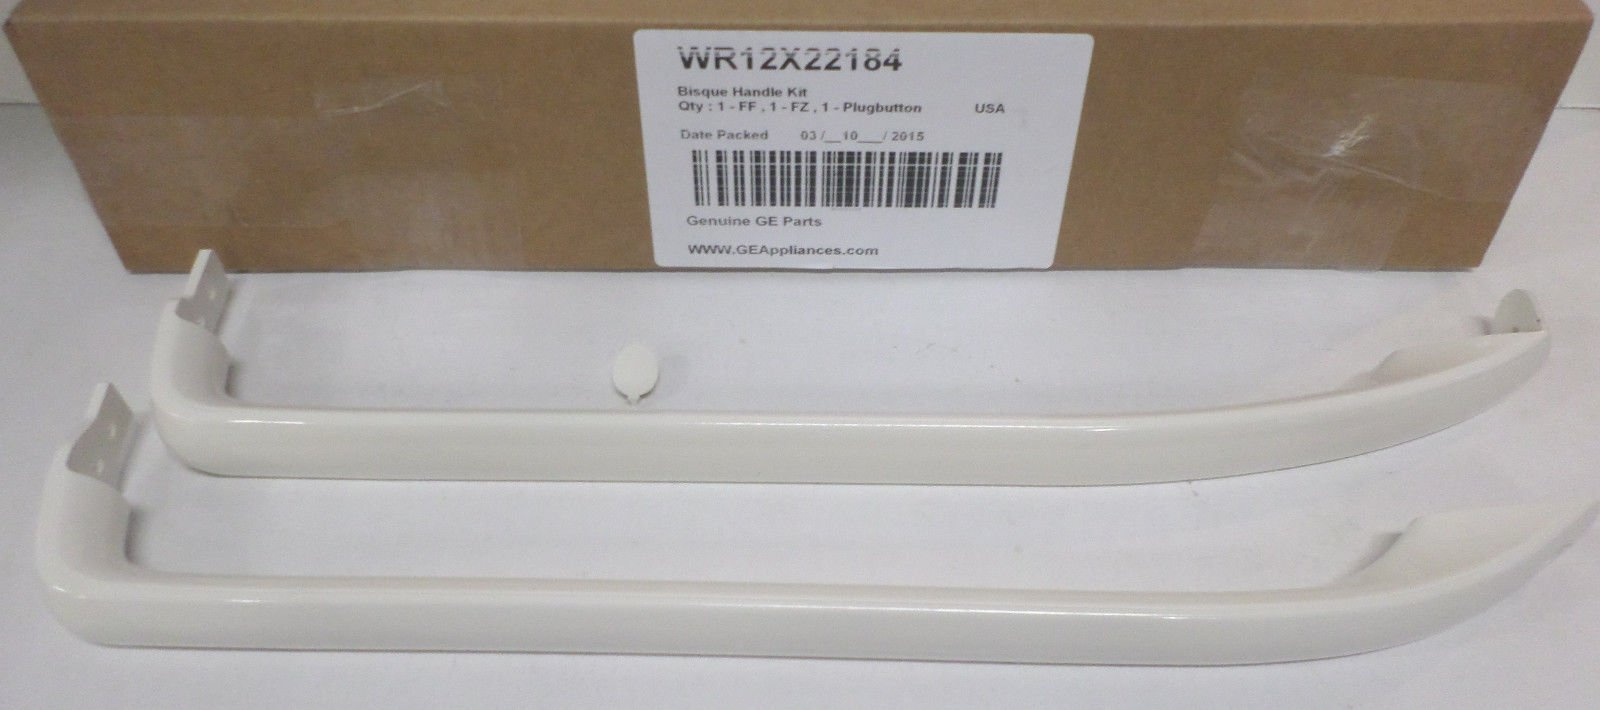 GE Smooth Handle Kit WR12X22184 by GE